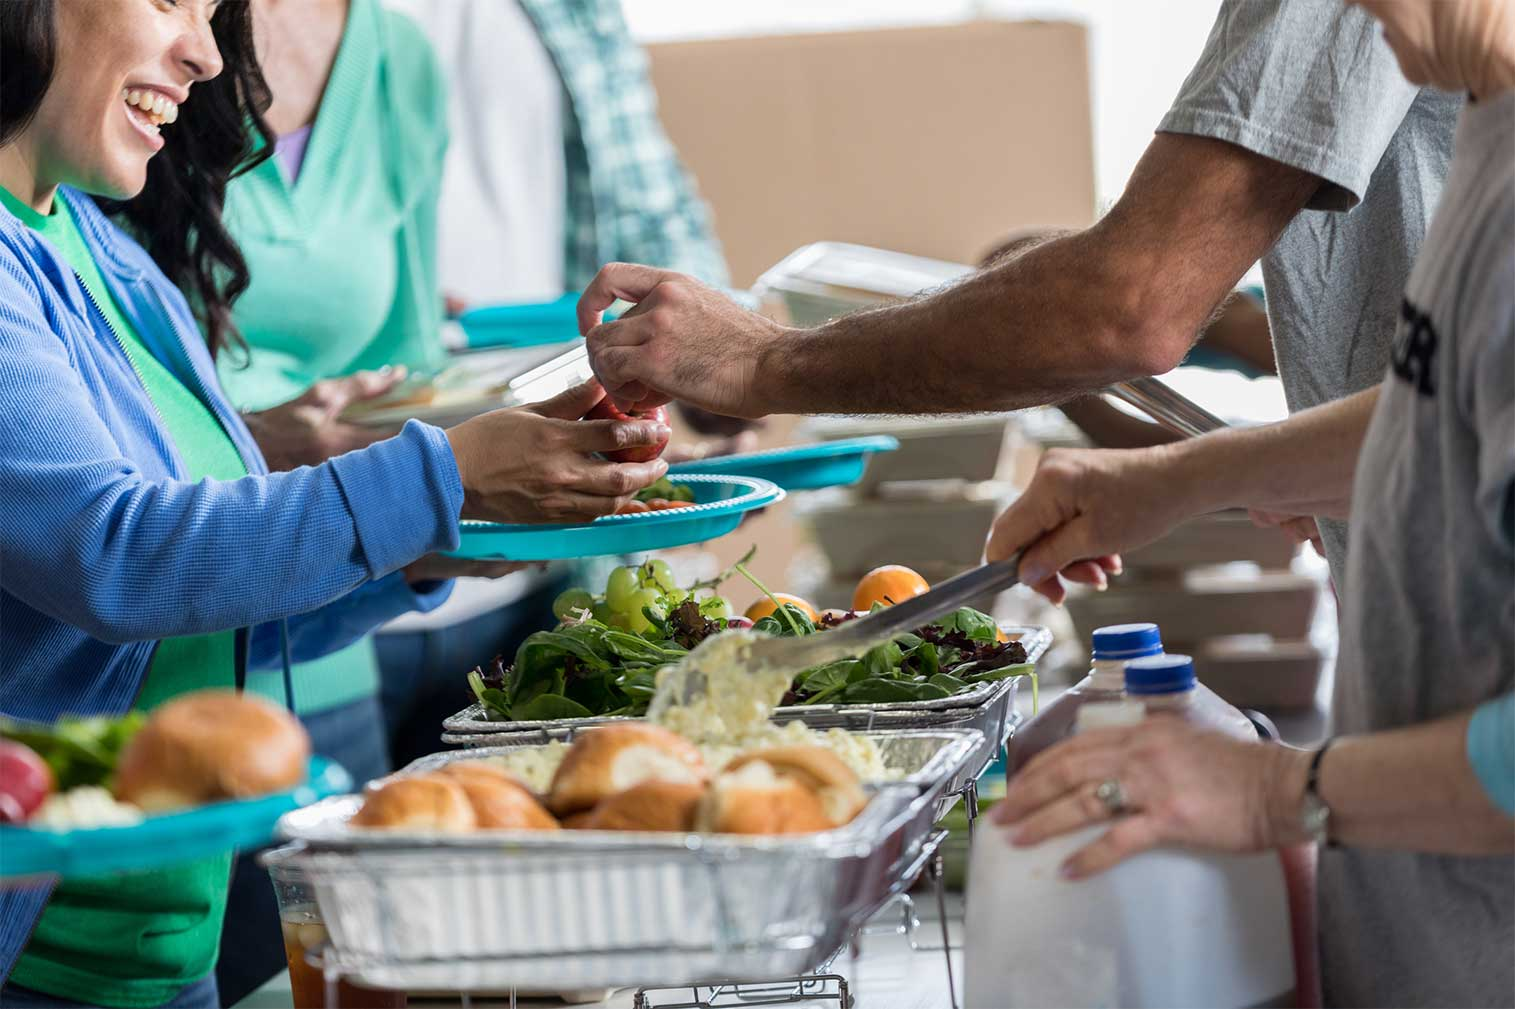 providing meals to those in need